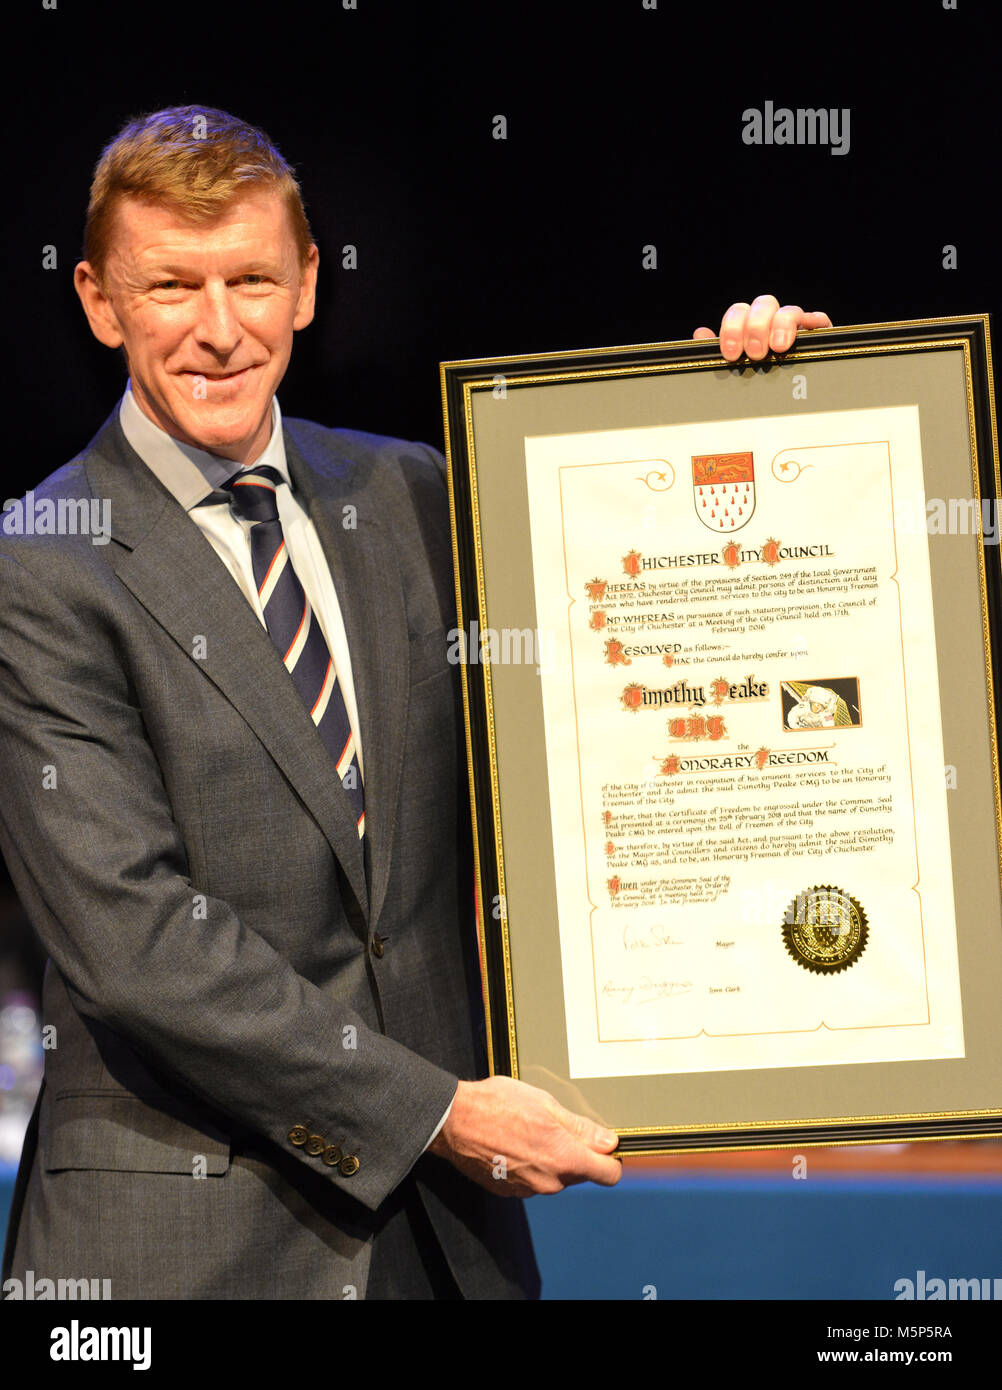 Chichester, UK. 25th February 2018. Astronaut Tim Peake receives the freedom of the City of Chichester, his home - Stock Image